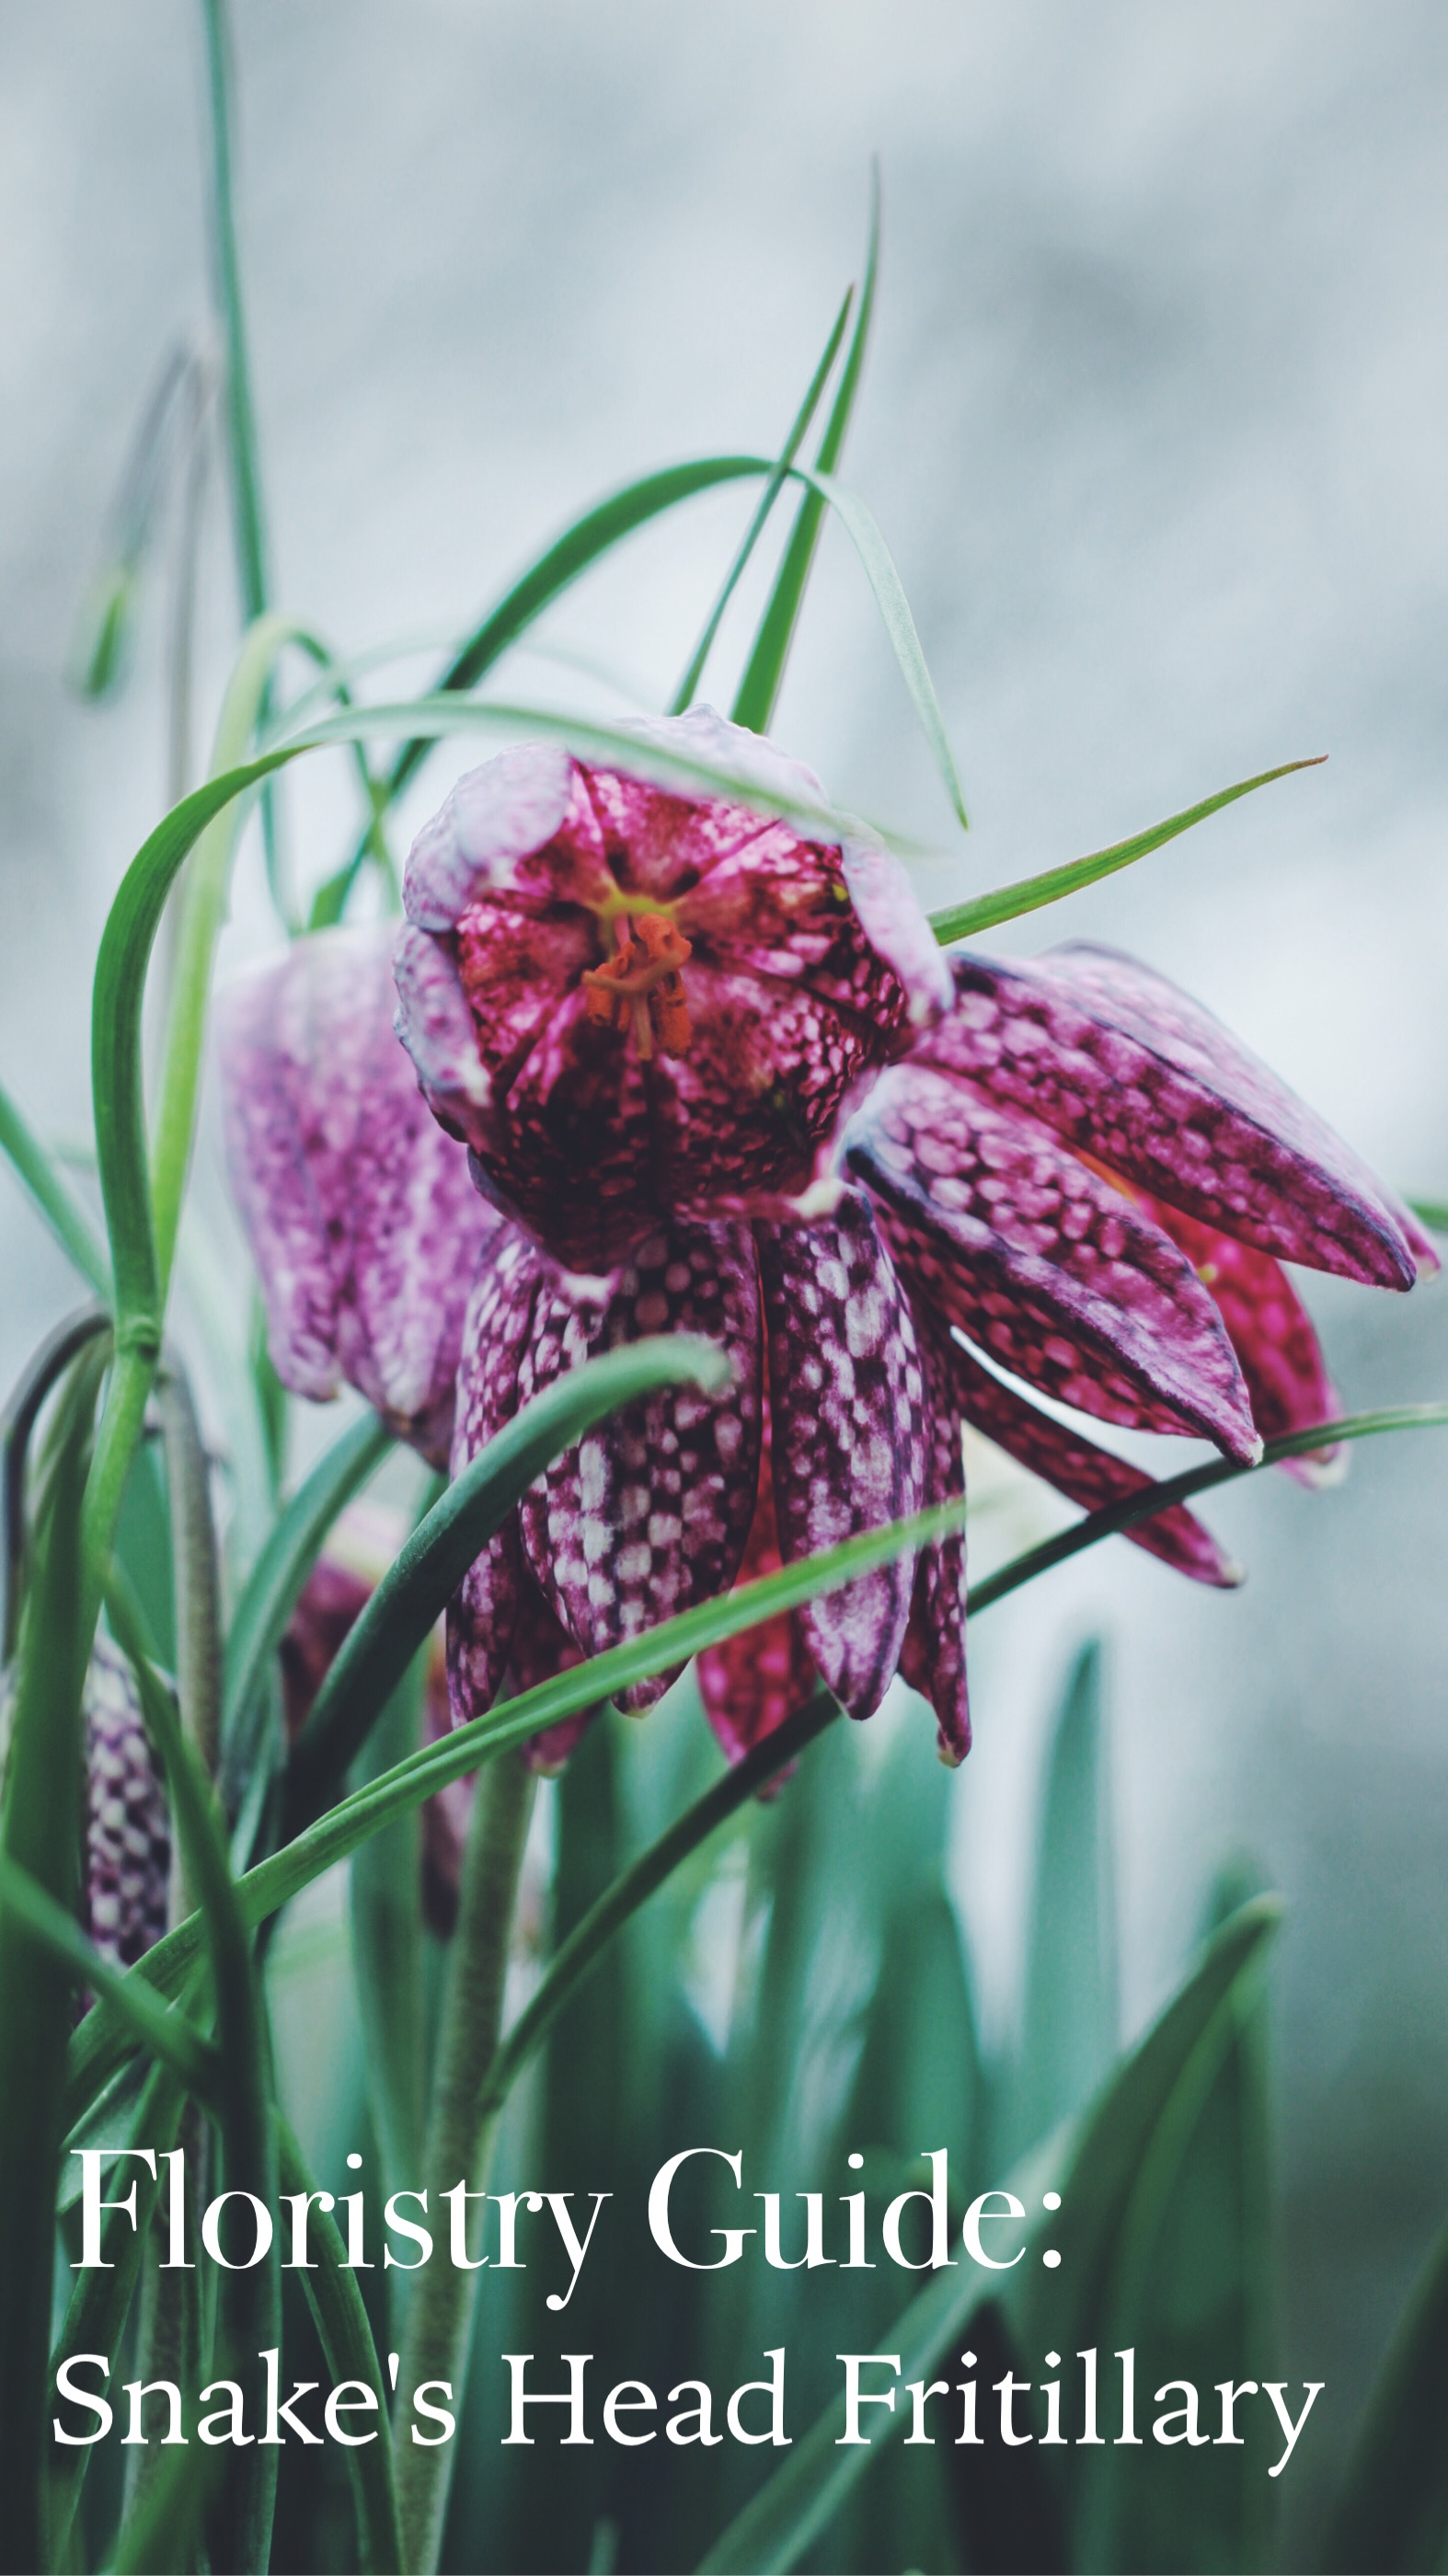 Snake's Head Fritillary by Jennifer Pinder. A guide to using this flower at weddings or events including the meaning of the flower (persecution) and a bit of the history too